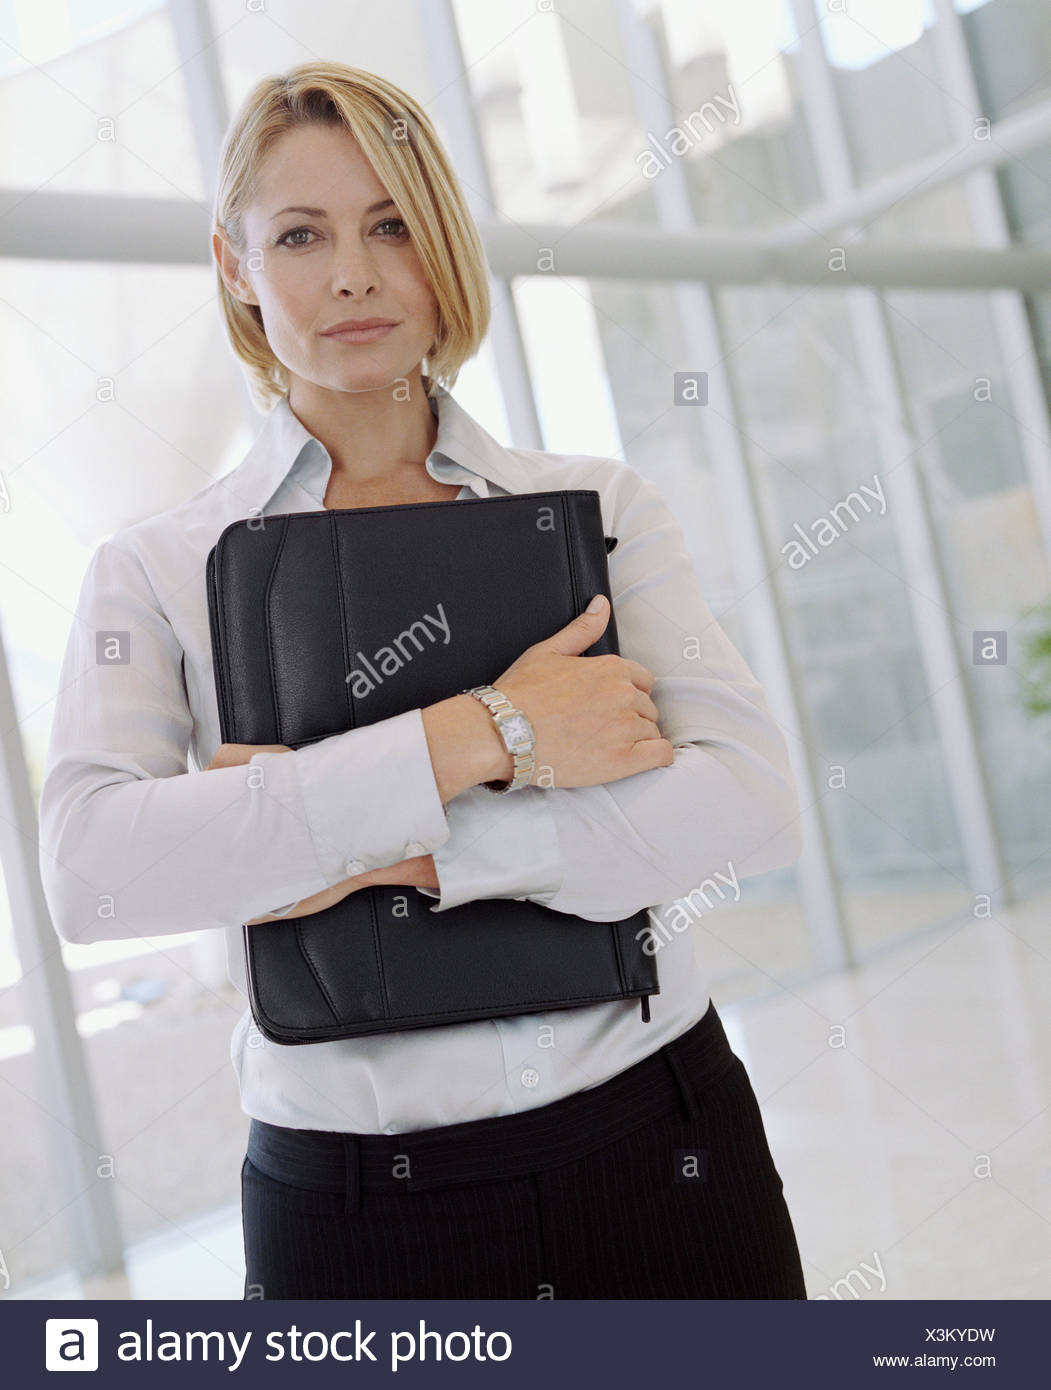 Businesswoman holding attache case - Stock Image